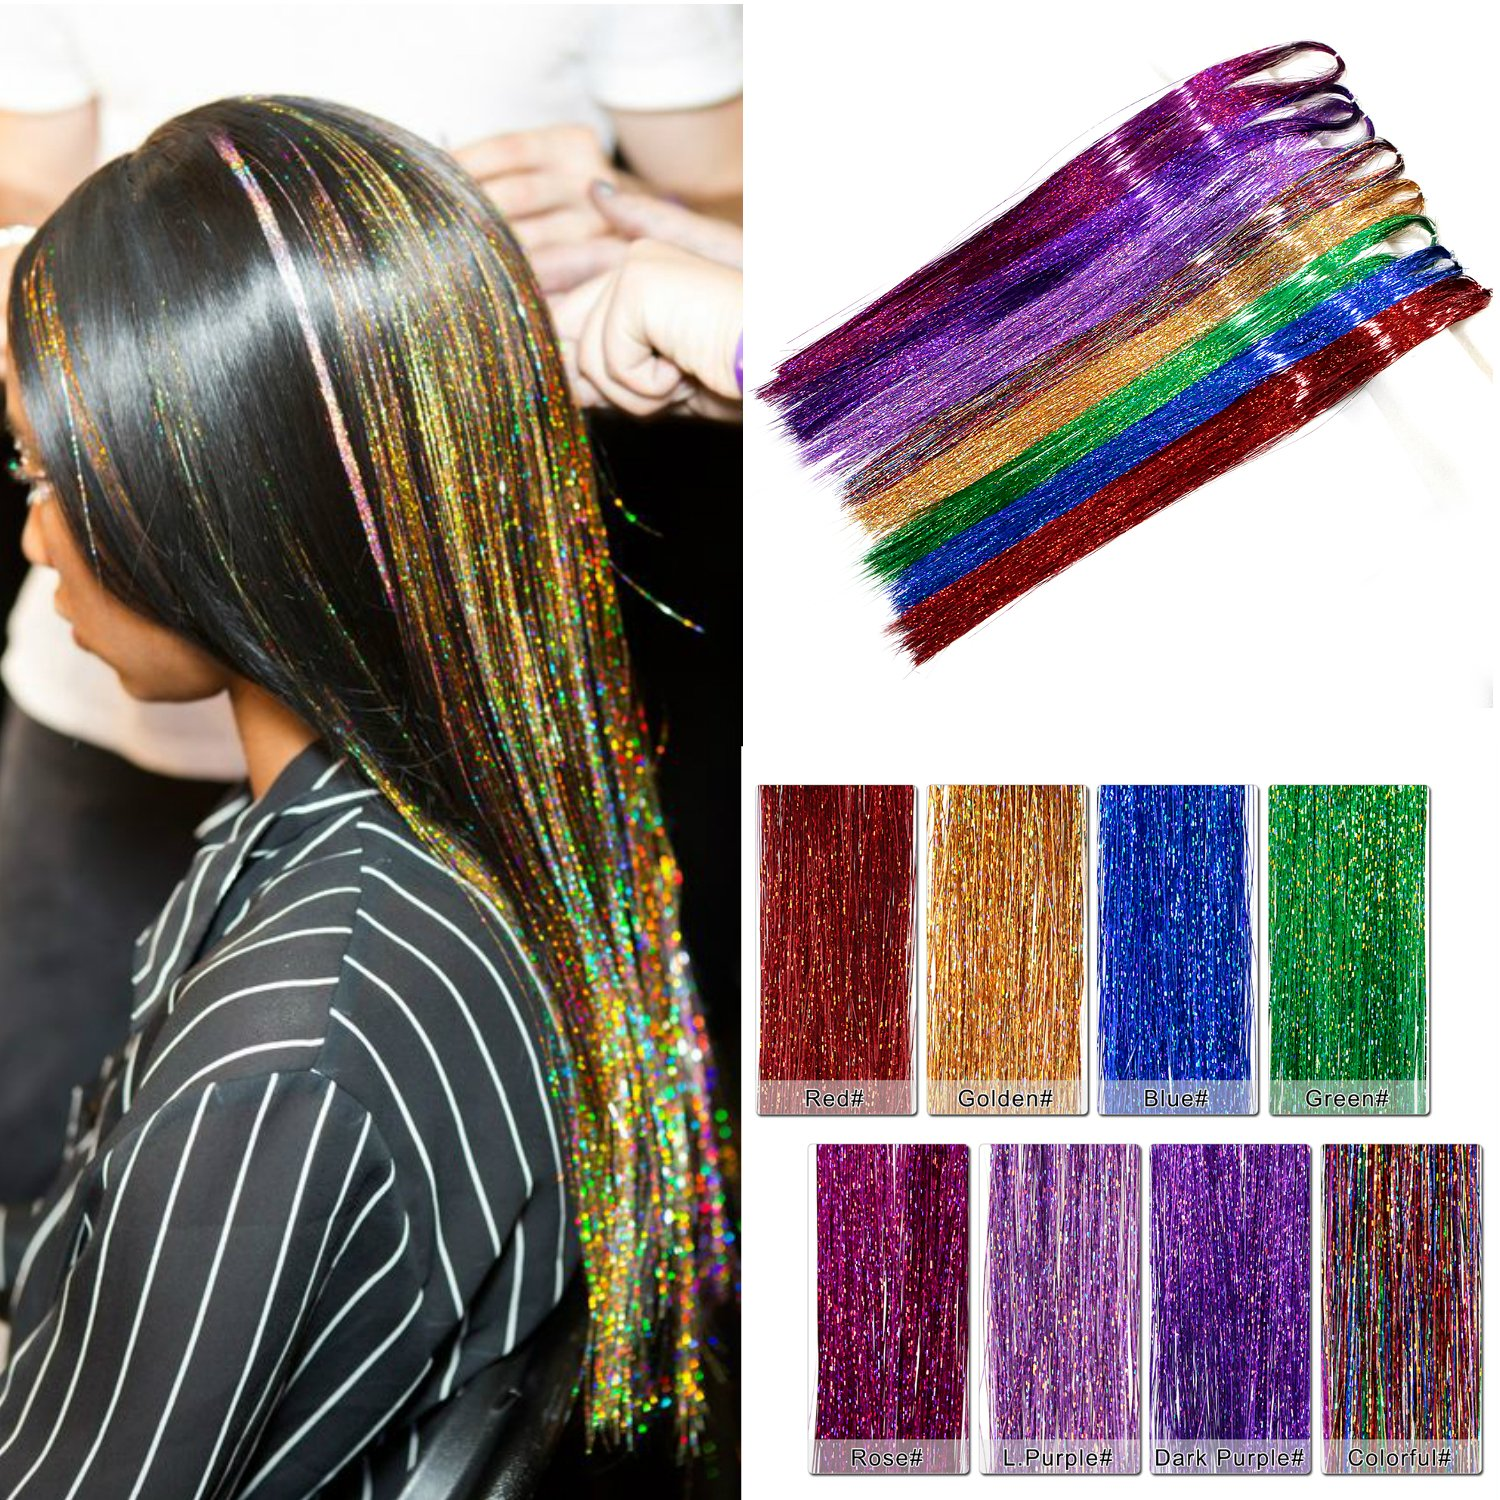 Amesun 35 Hair Tinsel 1200 Strands With Hook Eight Colors (Sparkling Blue flame, Sparkling Blue Sea, Sparkling Green Emerald, Sparkling Pink Fuchsia, Sparkling Purple Orchid, Sparkling Red Fire, Sparkling Mix) … Sparkling Mix) … ZHUHAIR AIYUCHEN COMPANY CO